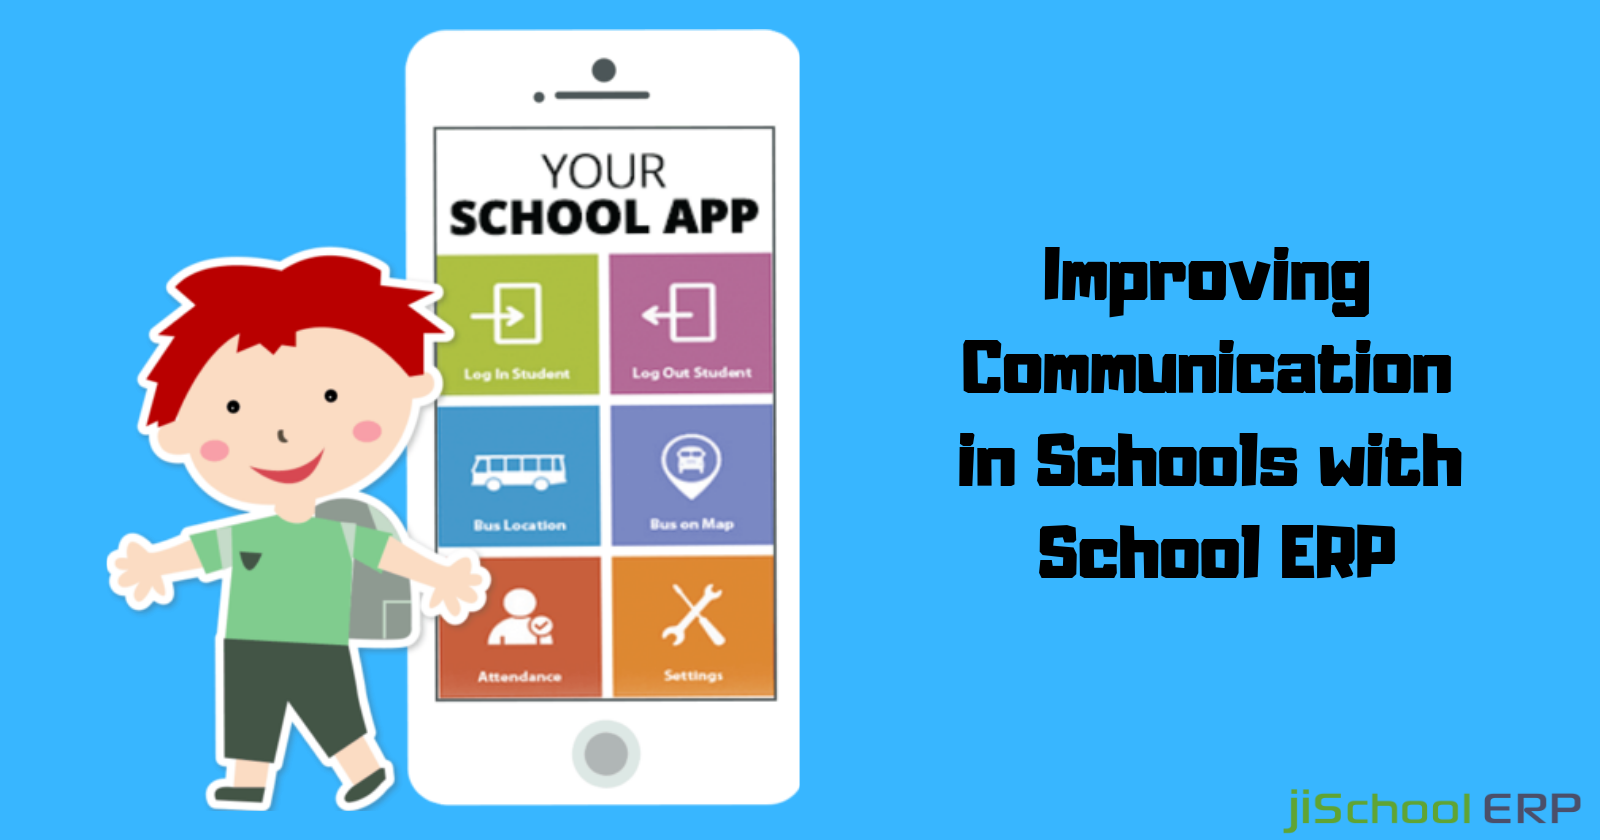 Improving Communication in Schools with School ERP